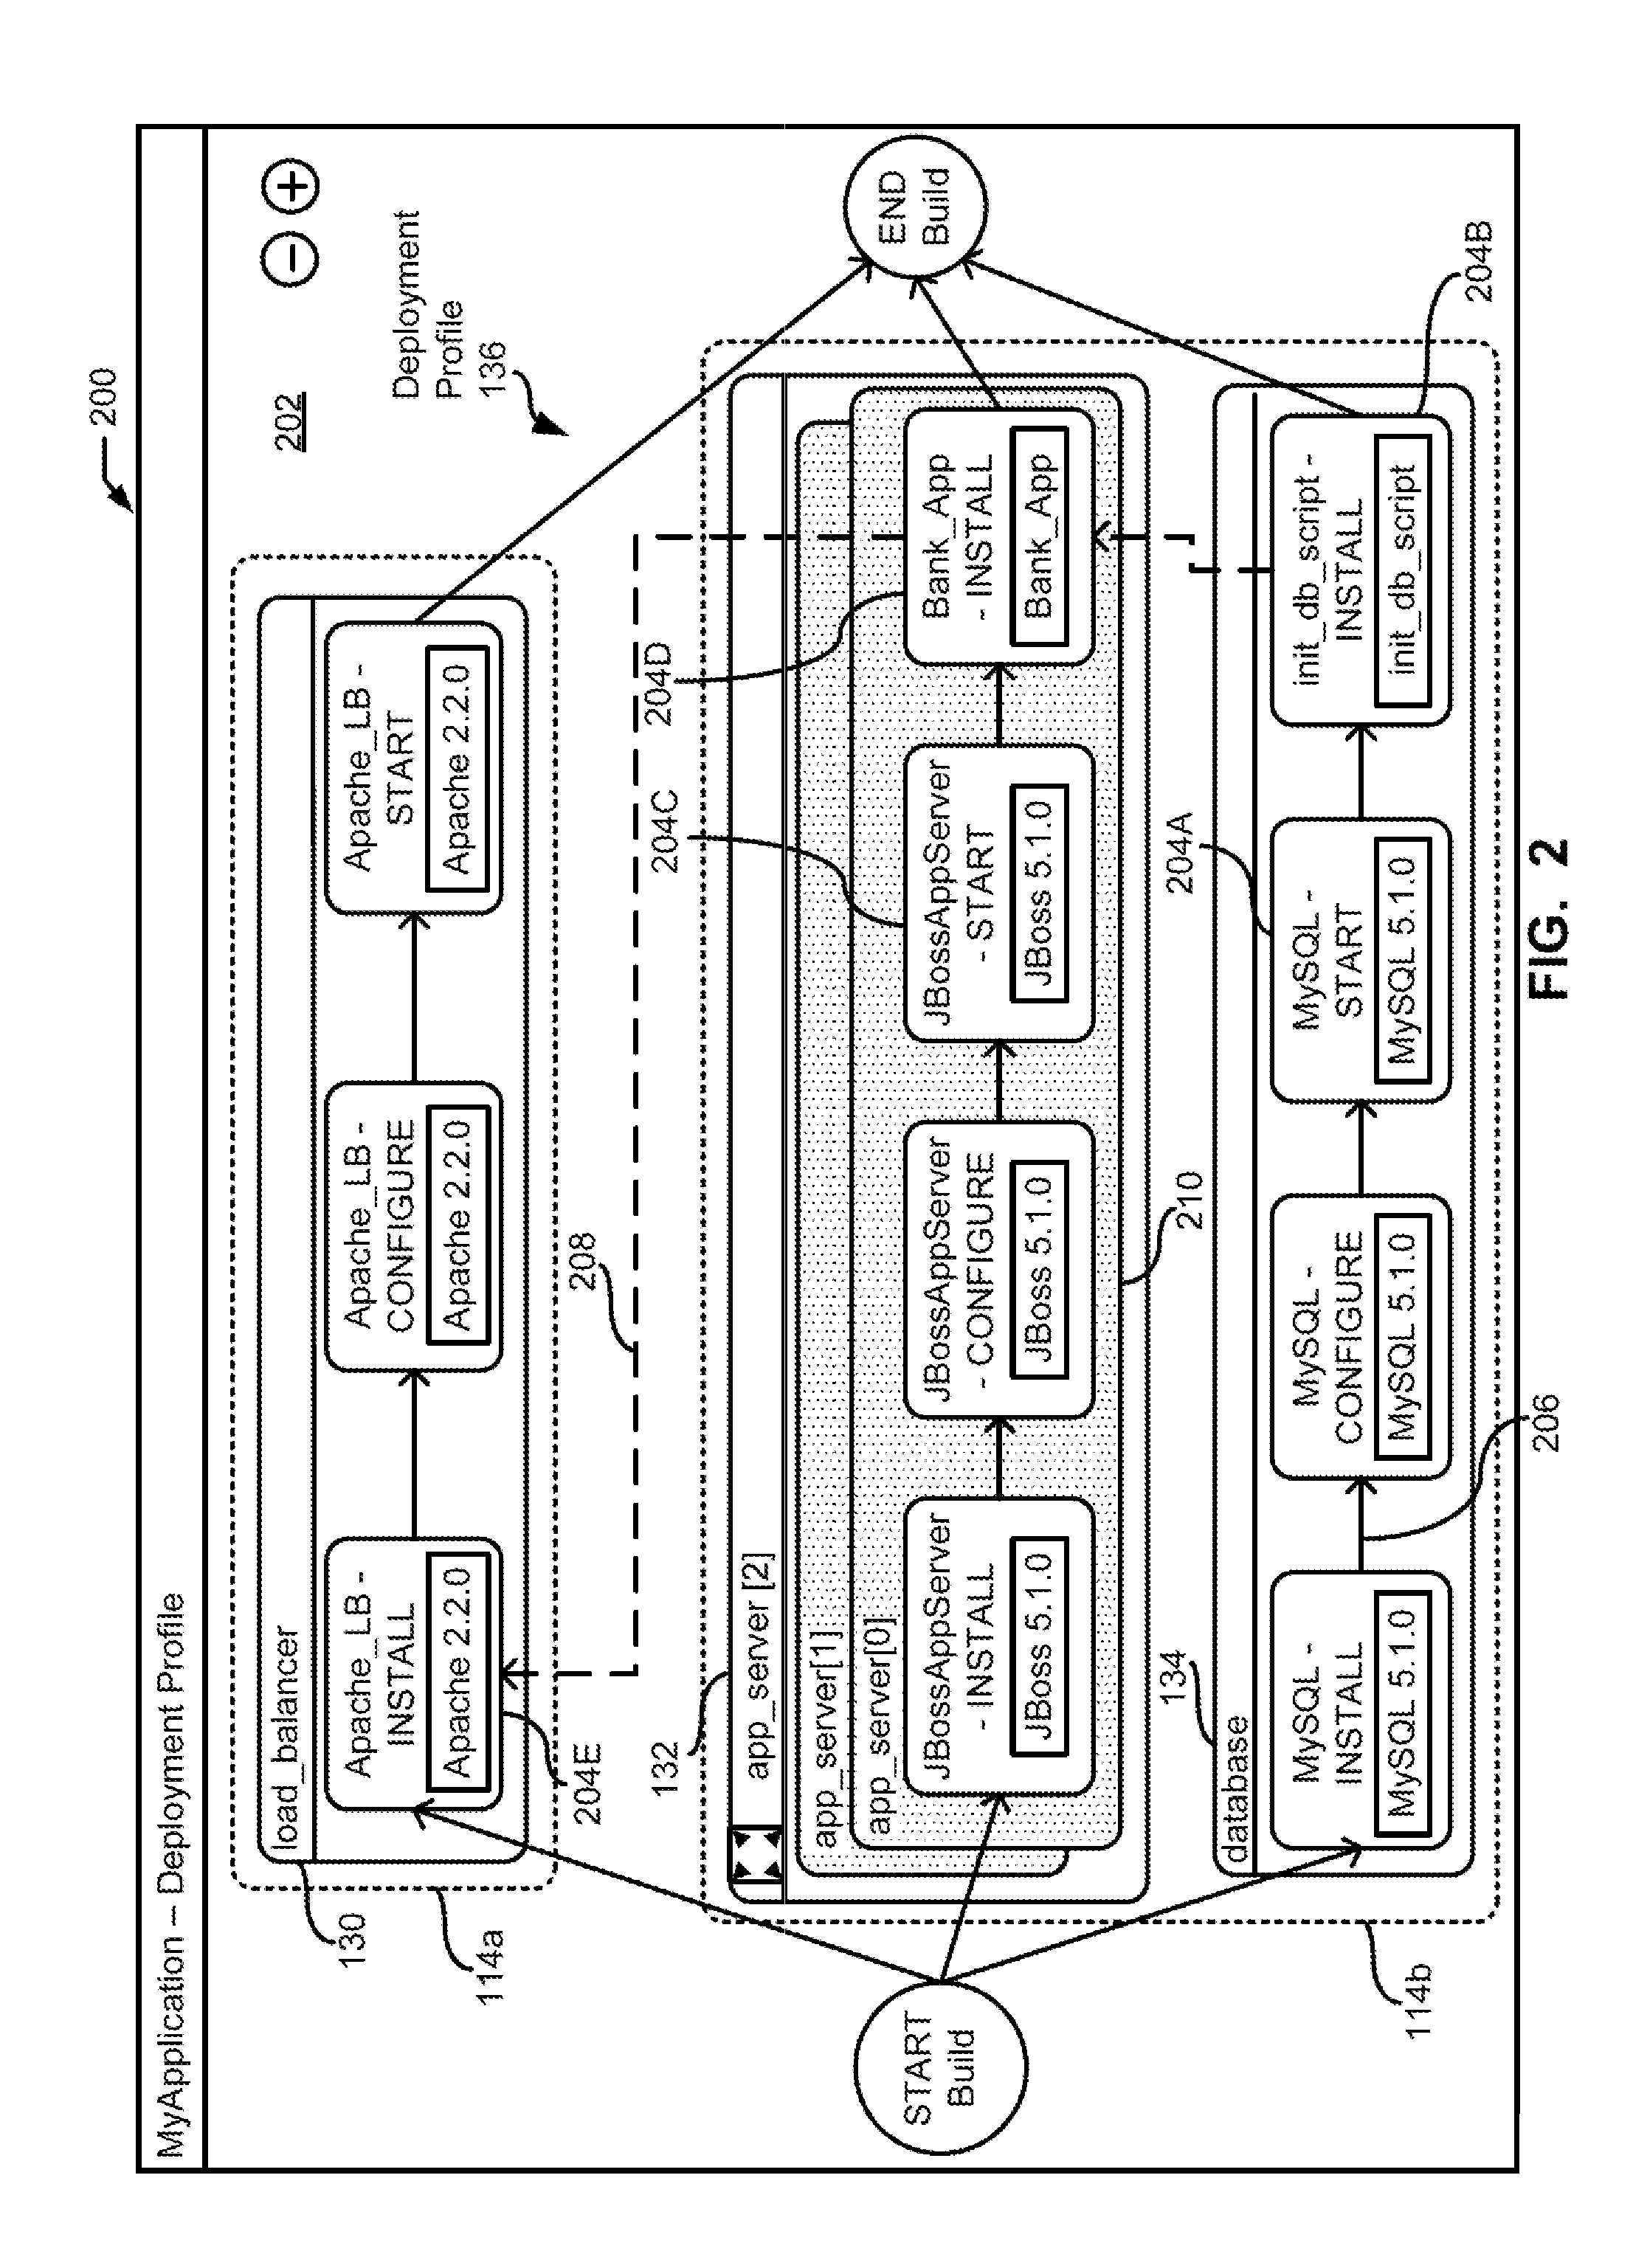 Us20150378716a1 Methods And Apparatus To Update Application Use The Form Below Delete This Crt Monitor Diagram Wars Schematic Deployments In Cloud Computing Environments Google Patents